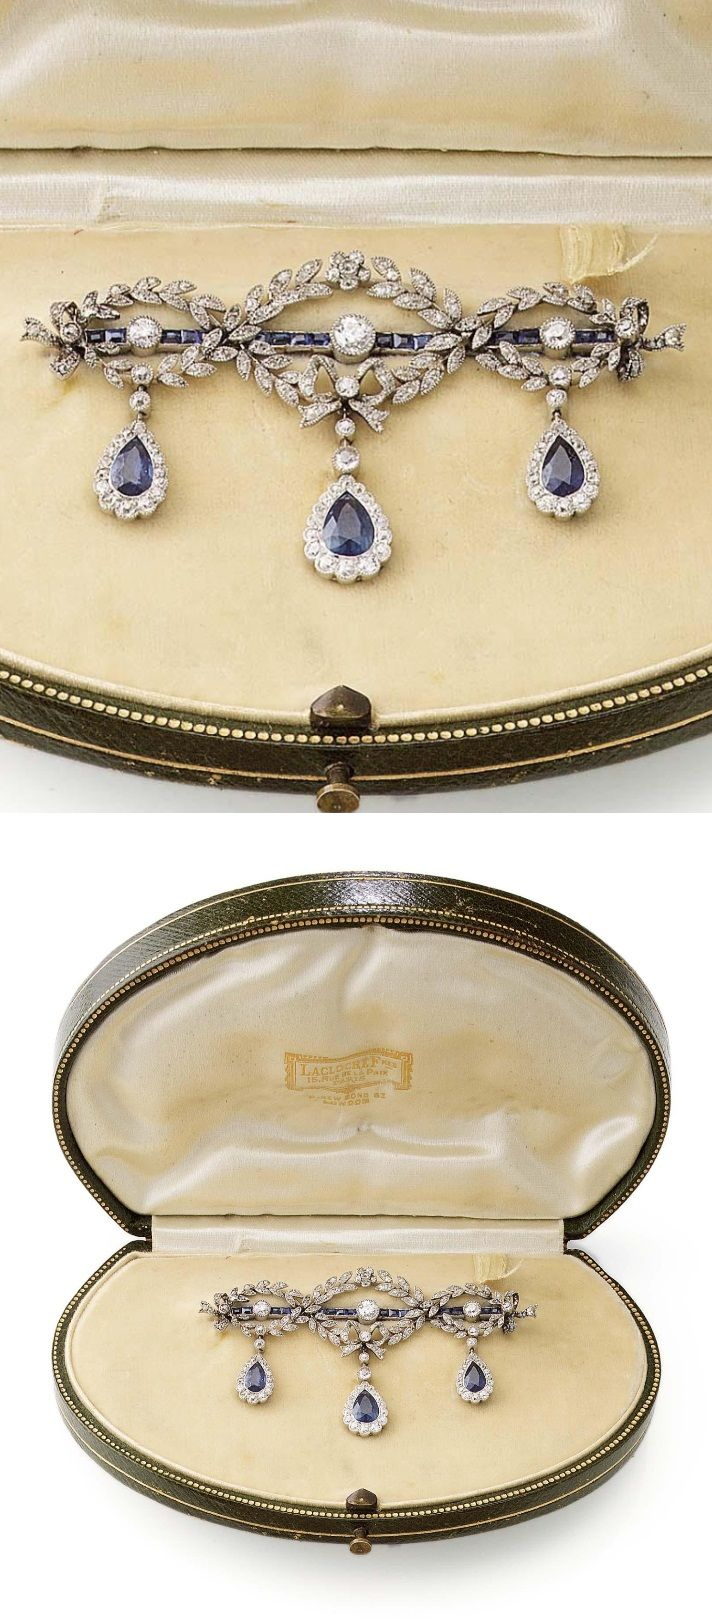 A BELLE EPOQUE SAPPHIRE AND DIAMOND BROOCH, CIRCA 1915. The calibré-cut sapphire and circular-cut diamond bar brooch, decorated with foliate and garland diamond swags, suspending three sapphire and diamond cluster pendants, assay marks to the pin and brooch fitting, vaguely numbered, traces of solder, accompanied by a fitted case by La Cloche Fres, Paris. #BelleÉpoque #brooch